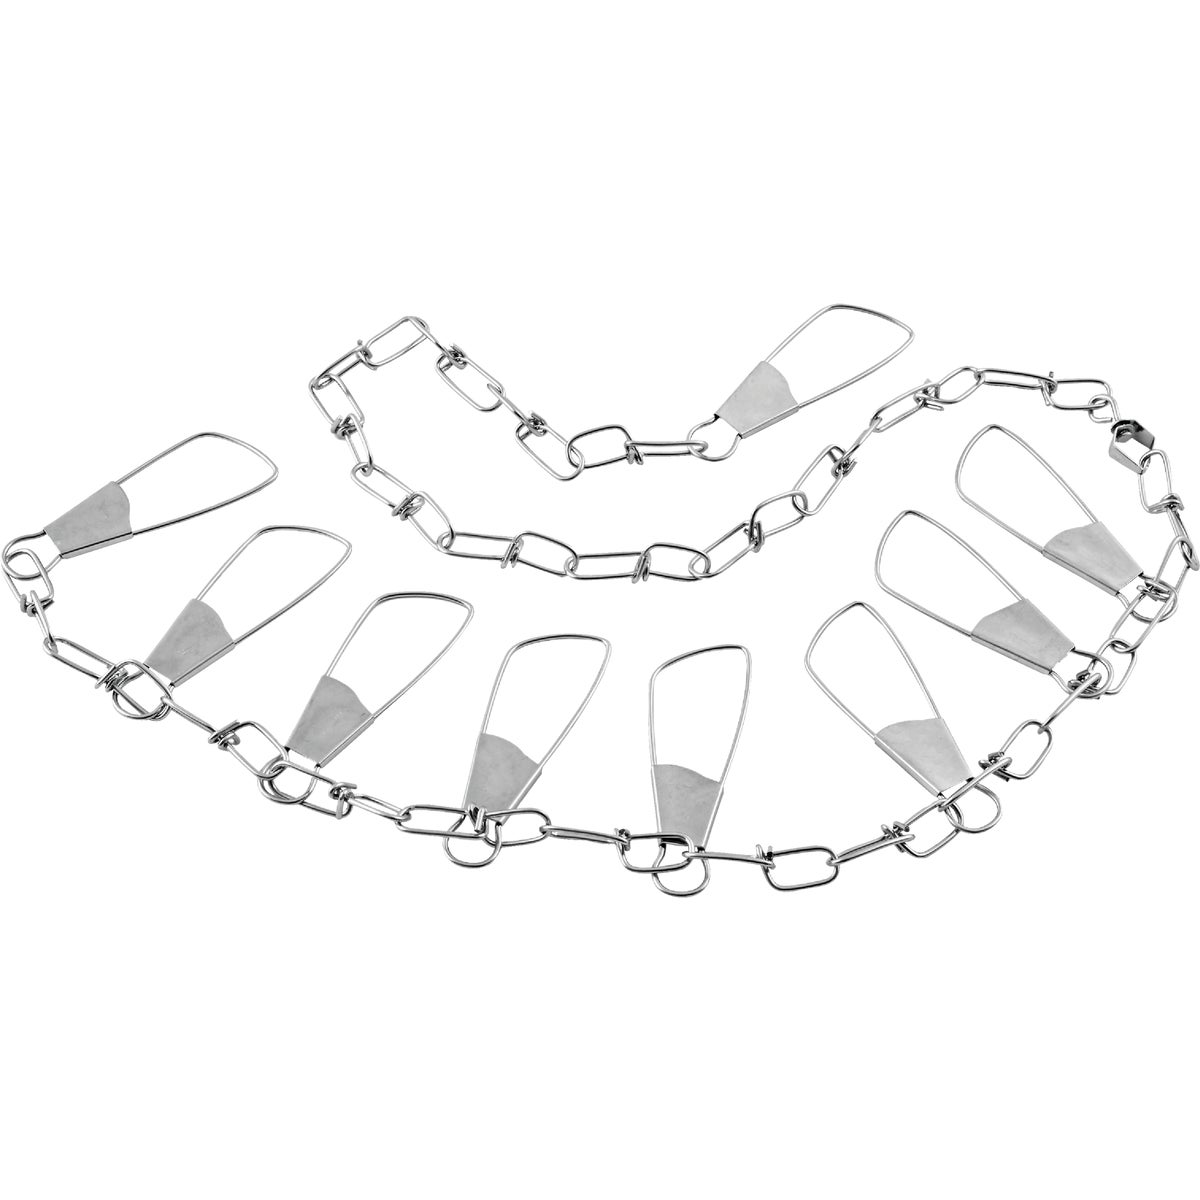 9-SNAP CHAIN STRINGER - SBFS19 by South Bend Sptg Good